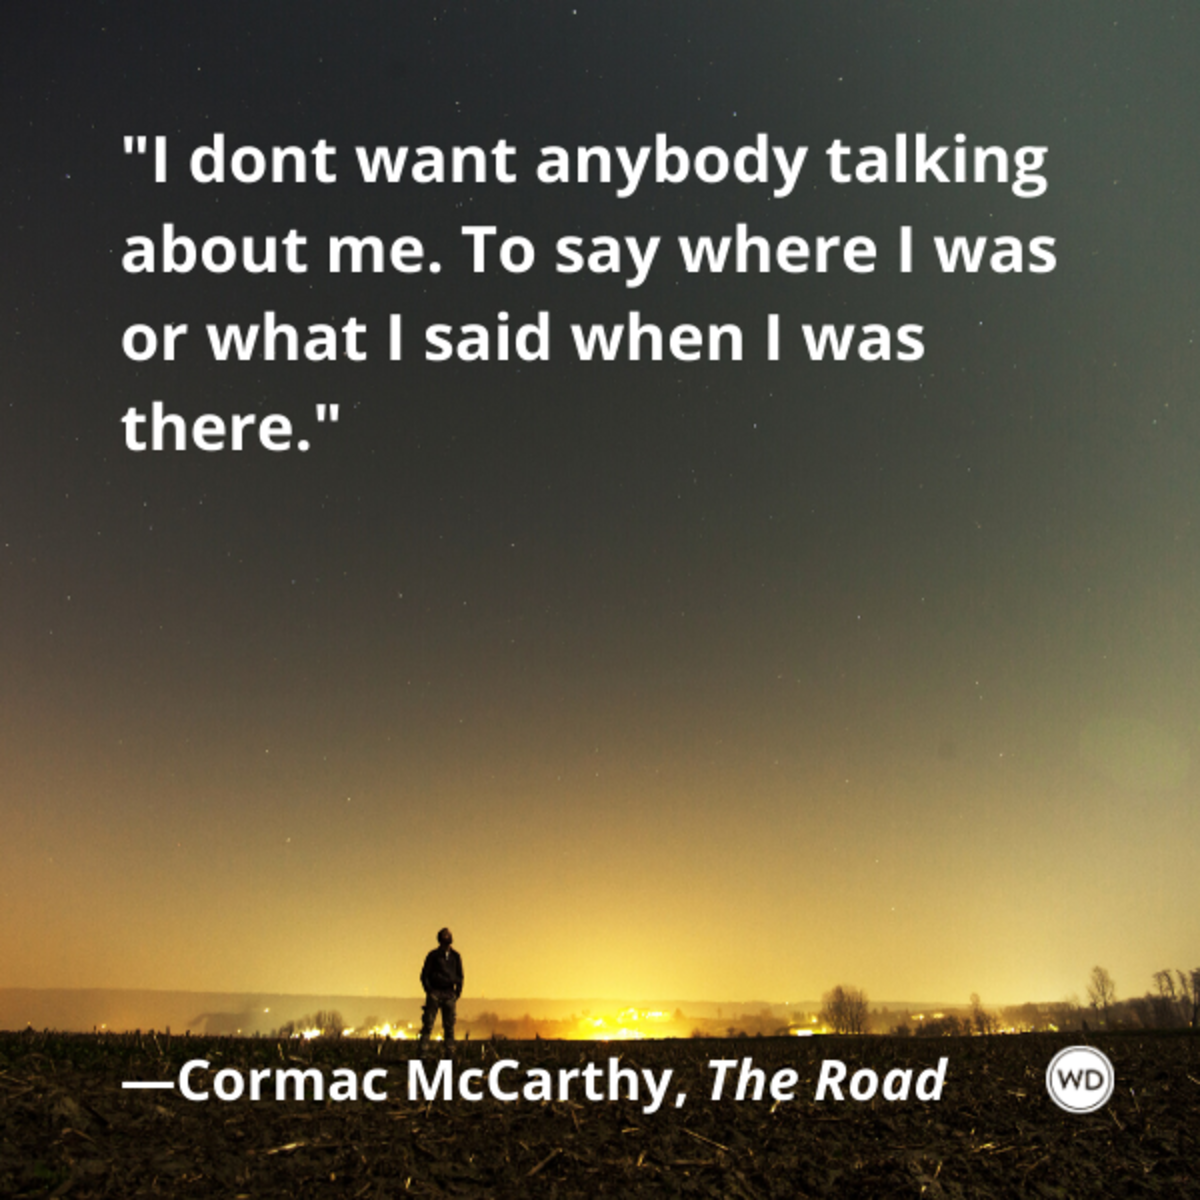 cormac_mccarthy_the_road_quotes_i_dont_want_anybody_talking_about_me